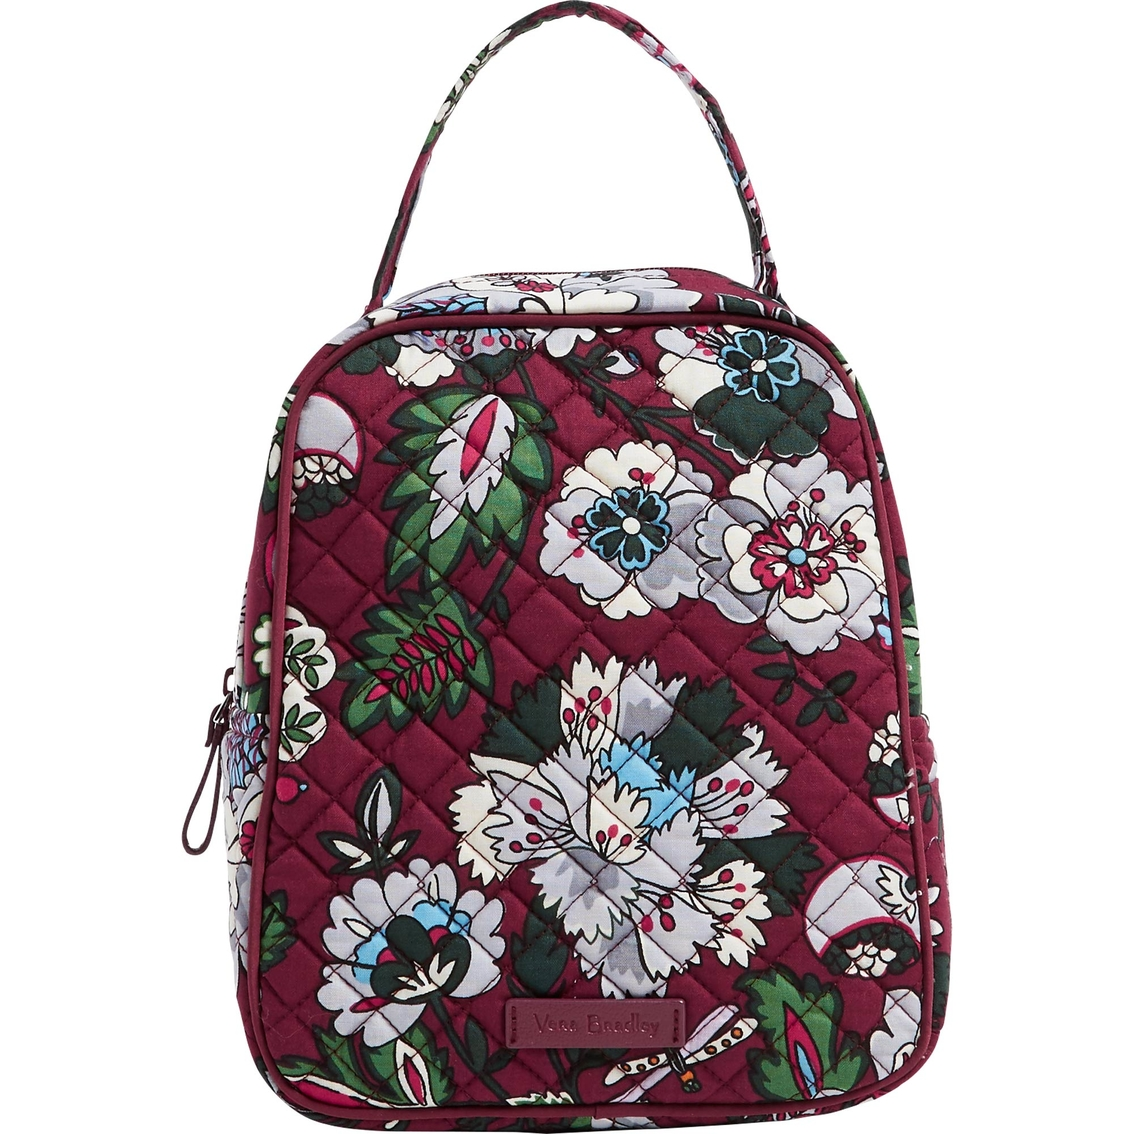 Vera Bradley Iconic Lunch Bunch Bordeaux Blooms By